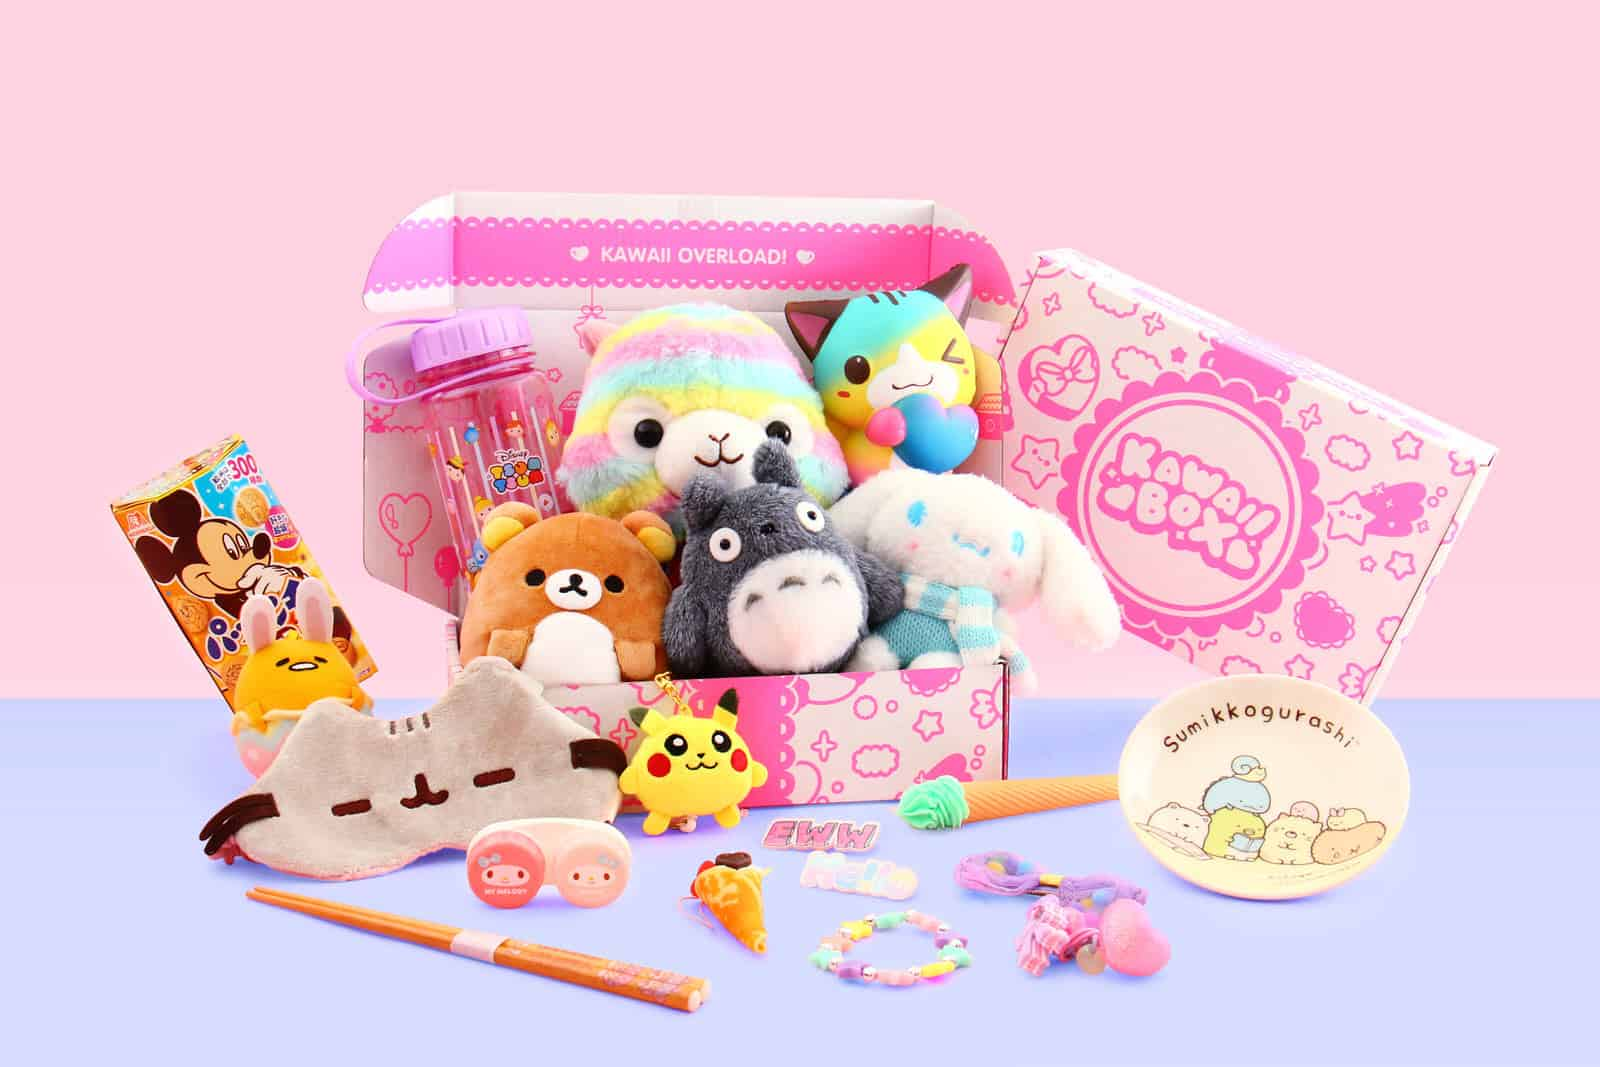 Image of: Japanese Each Monthly Mystery Box Is Filled With Super Cute Things Ranging Kawaii Stationery Cute Squishies Kawaii Plushies More Gdpictureus Kawaii Box Find Subscription Boxes